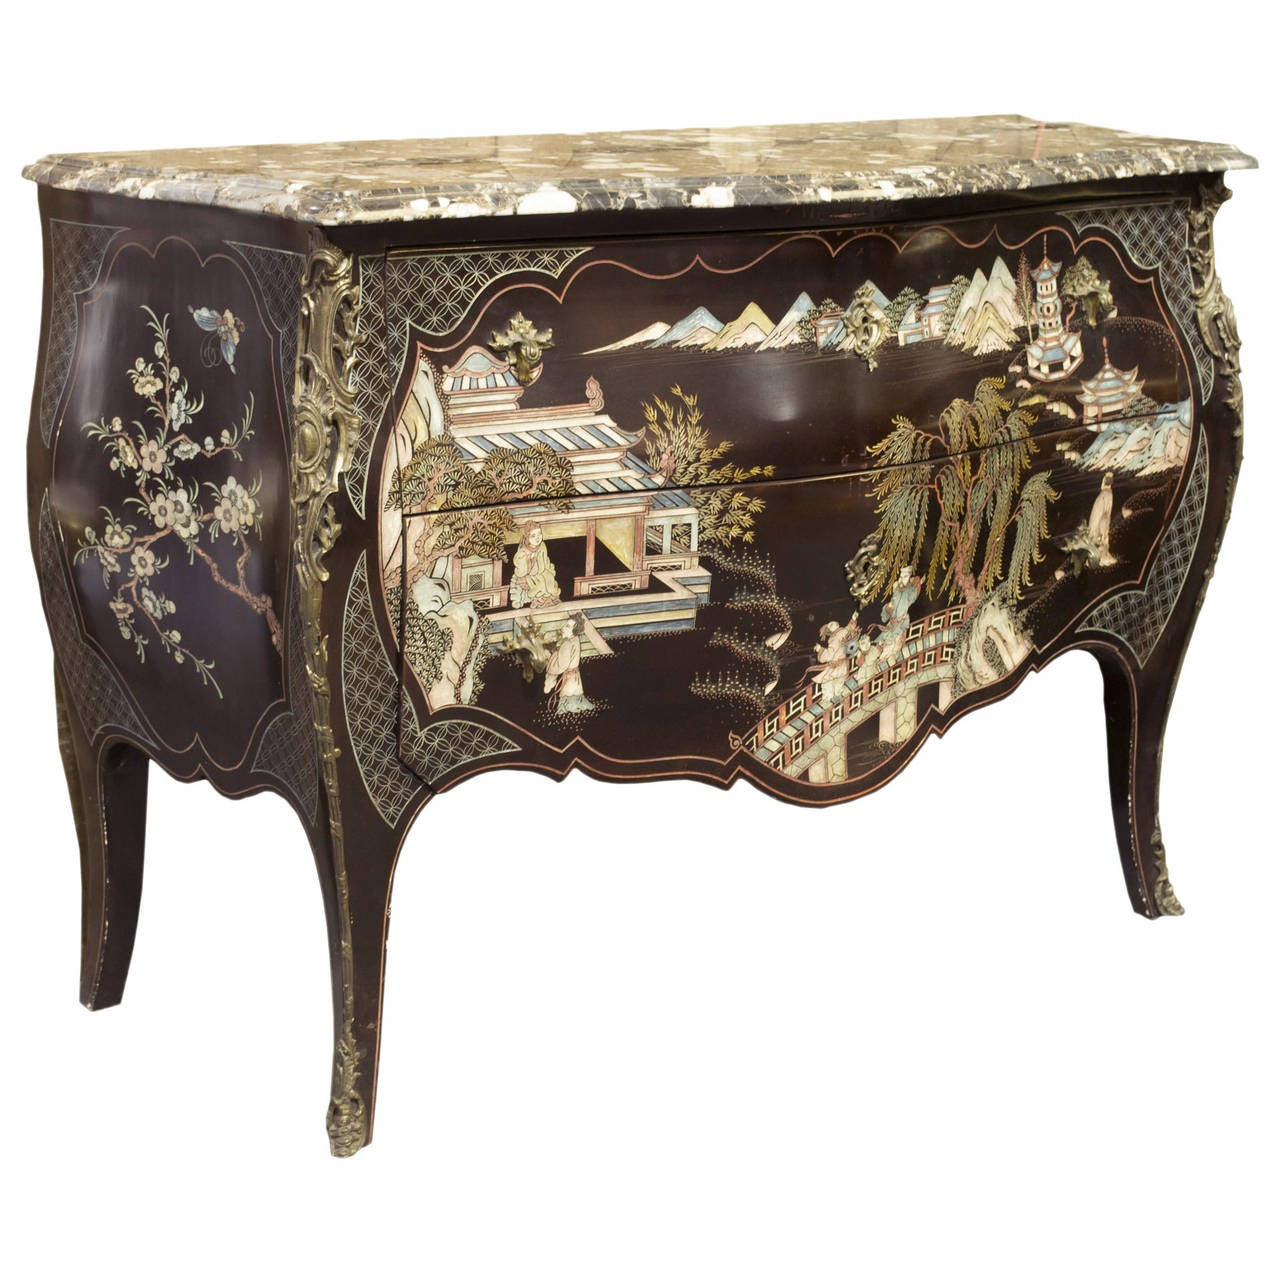 A French Louis Xv Style Coromandel Commode At 1stdibs